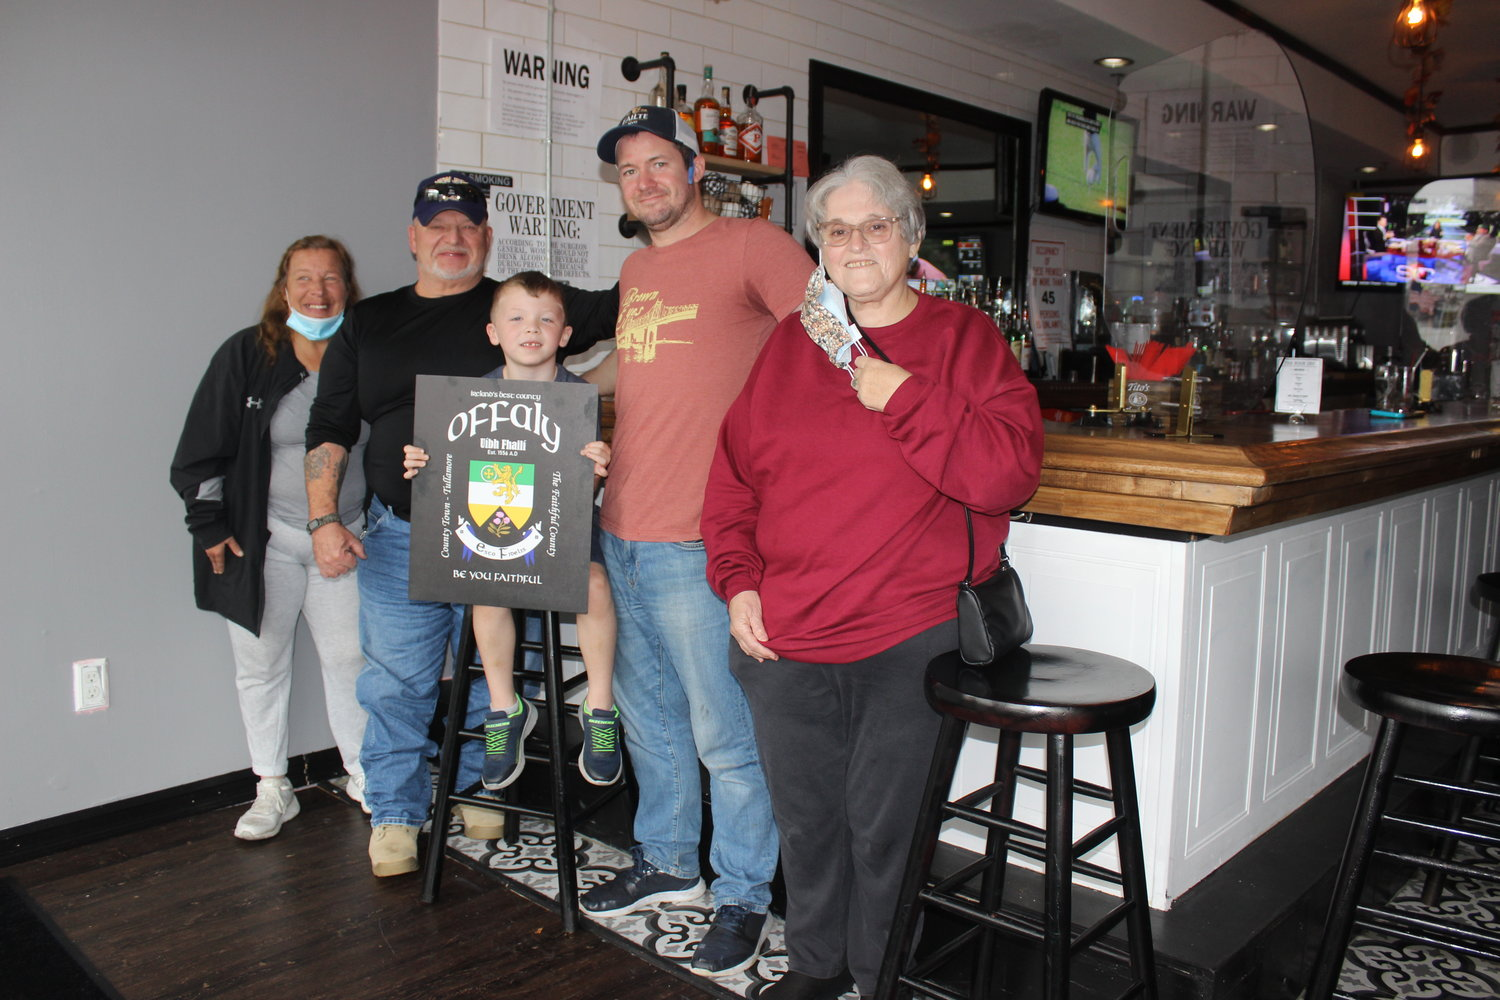 After losing touch decades ago, cousins from Offaly, Ireland, reconnected on Facebook, and discovered that they both live in East Meadow. Kathy Marsolais, left, met Danny Price, second from right, at his bar, the Noon Inn, with her uncle Mike McDonald, second from left, Price's son, Fin, 5, and Marsolais's mother, Betty.